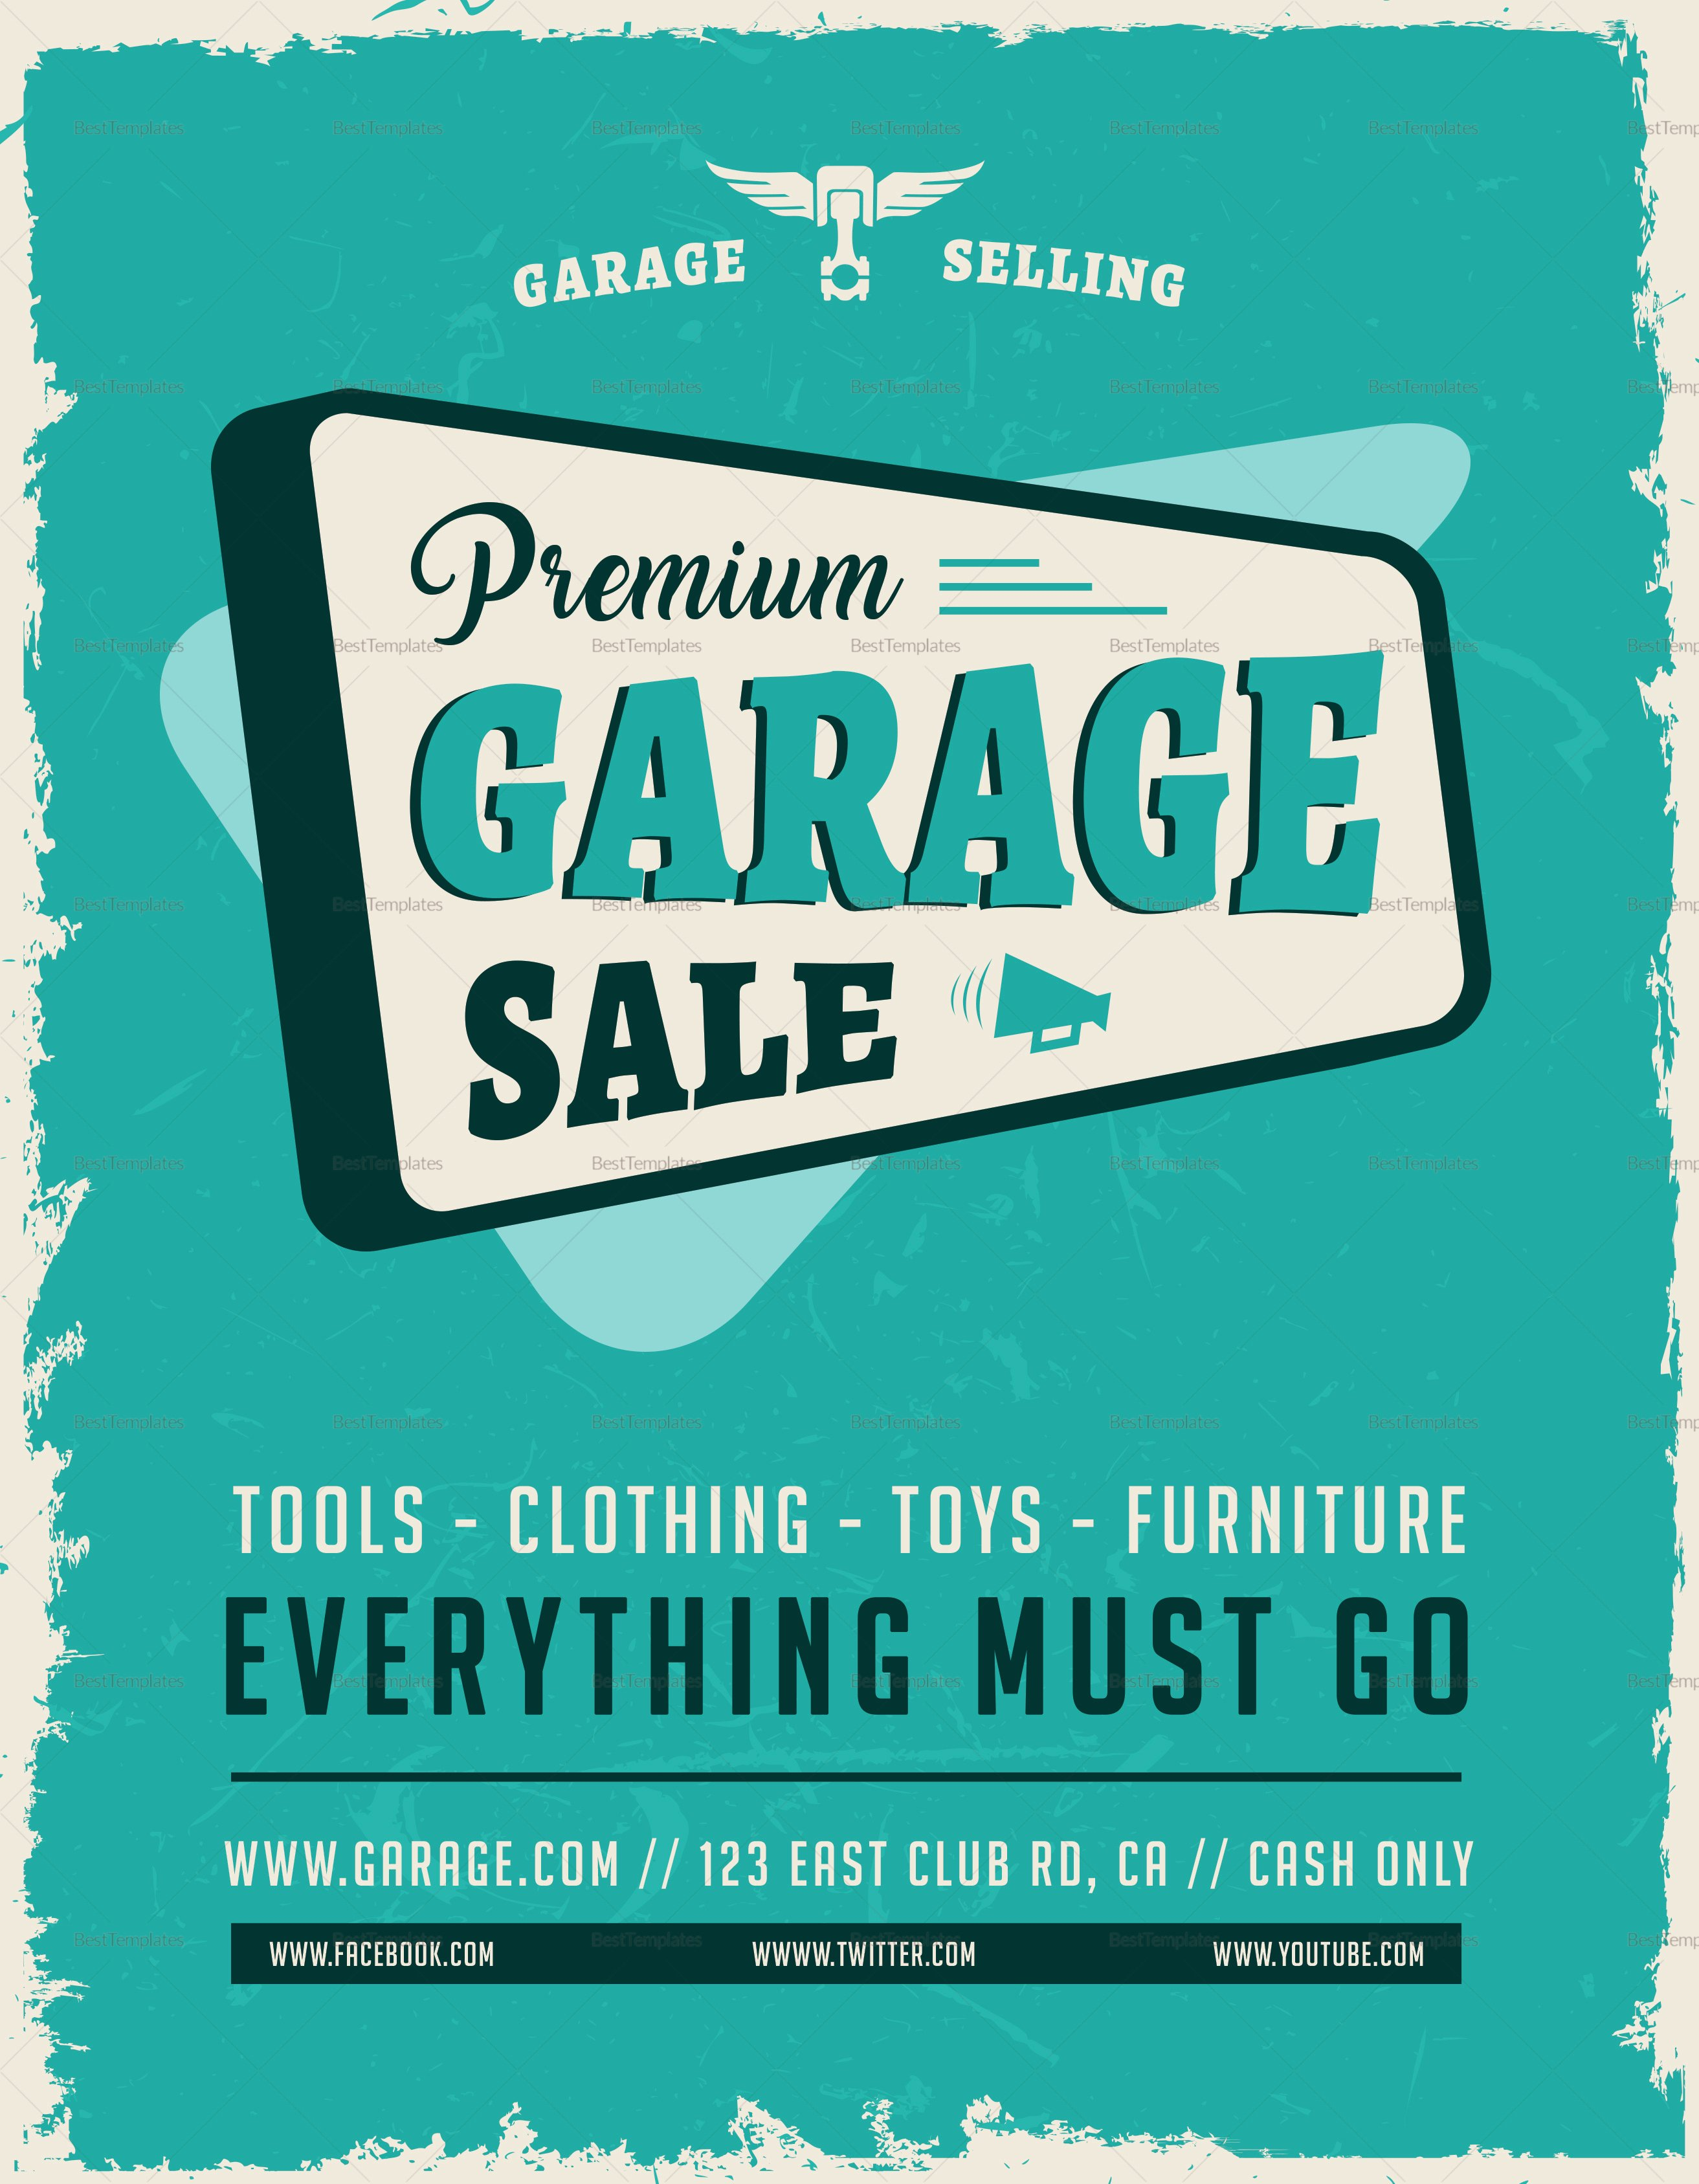 Sales Flyer Template Word Elegant Garage Sale Flyer Design Template In Word Psd Publisher